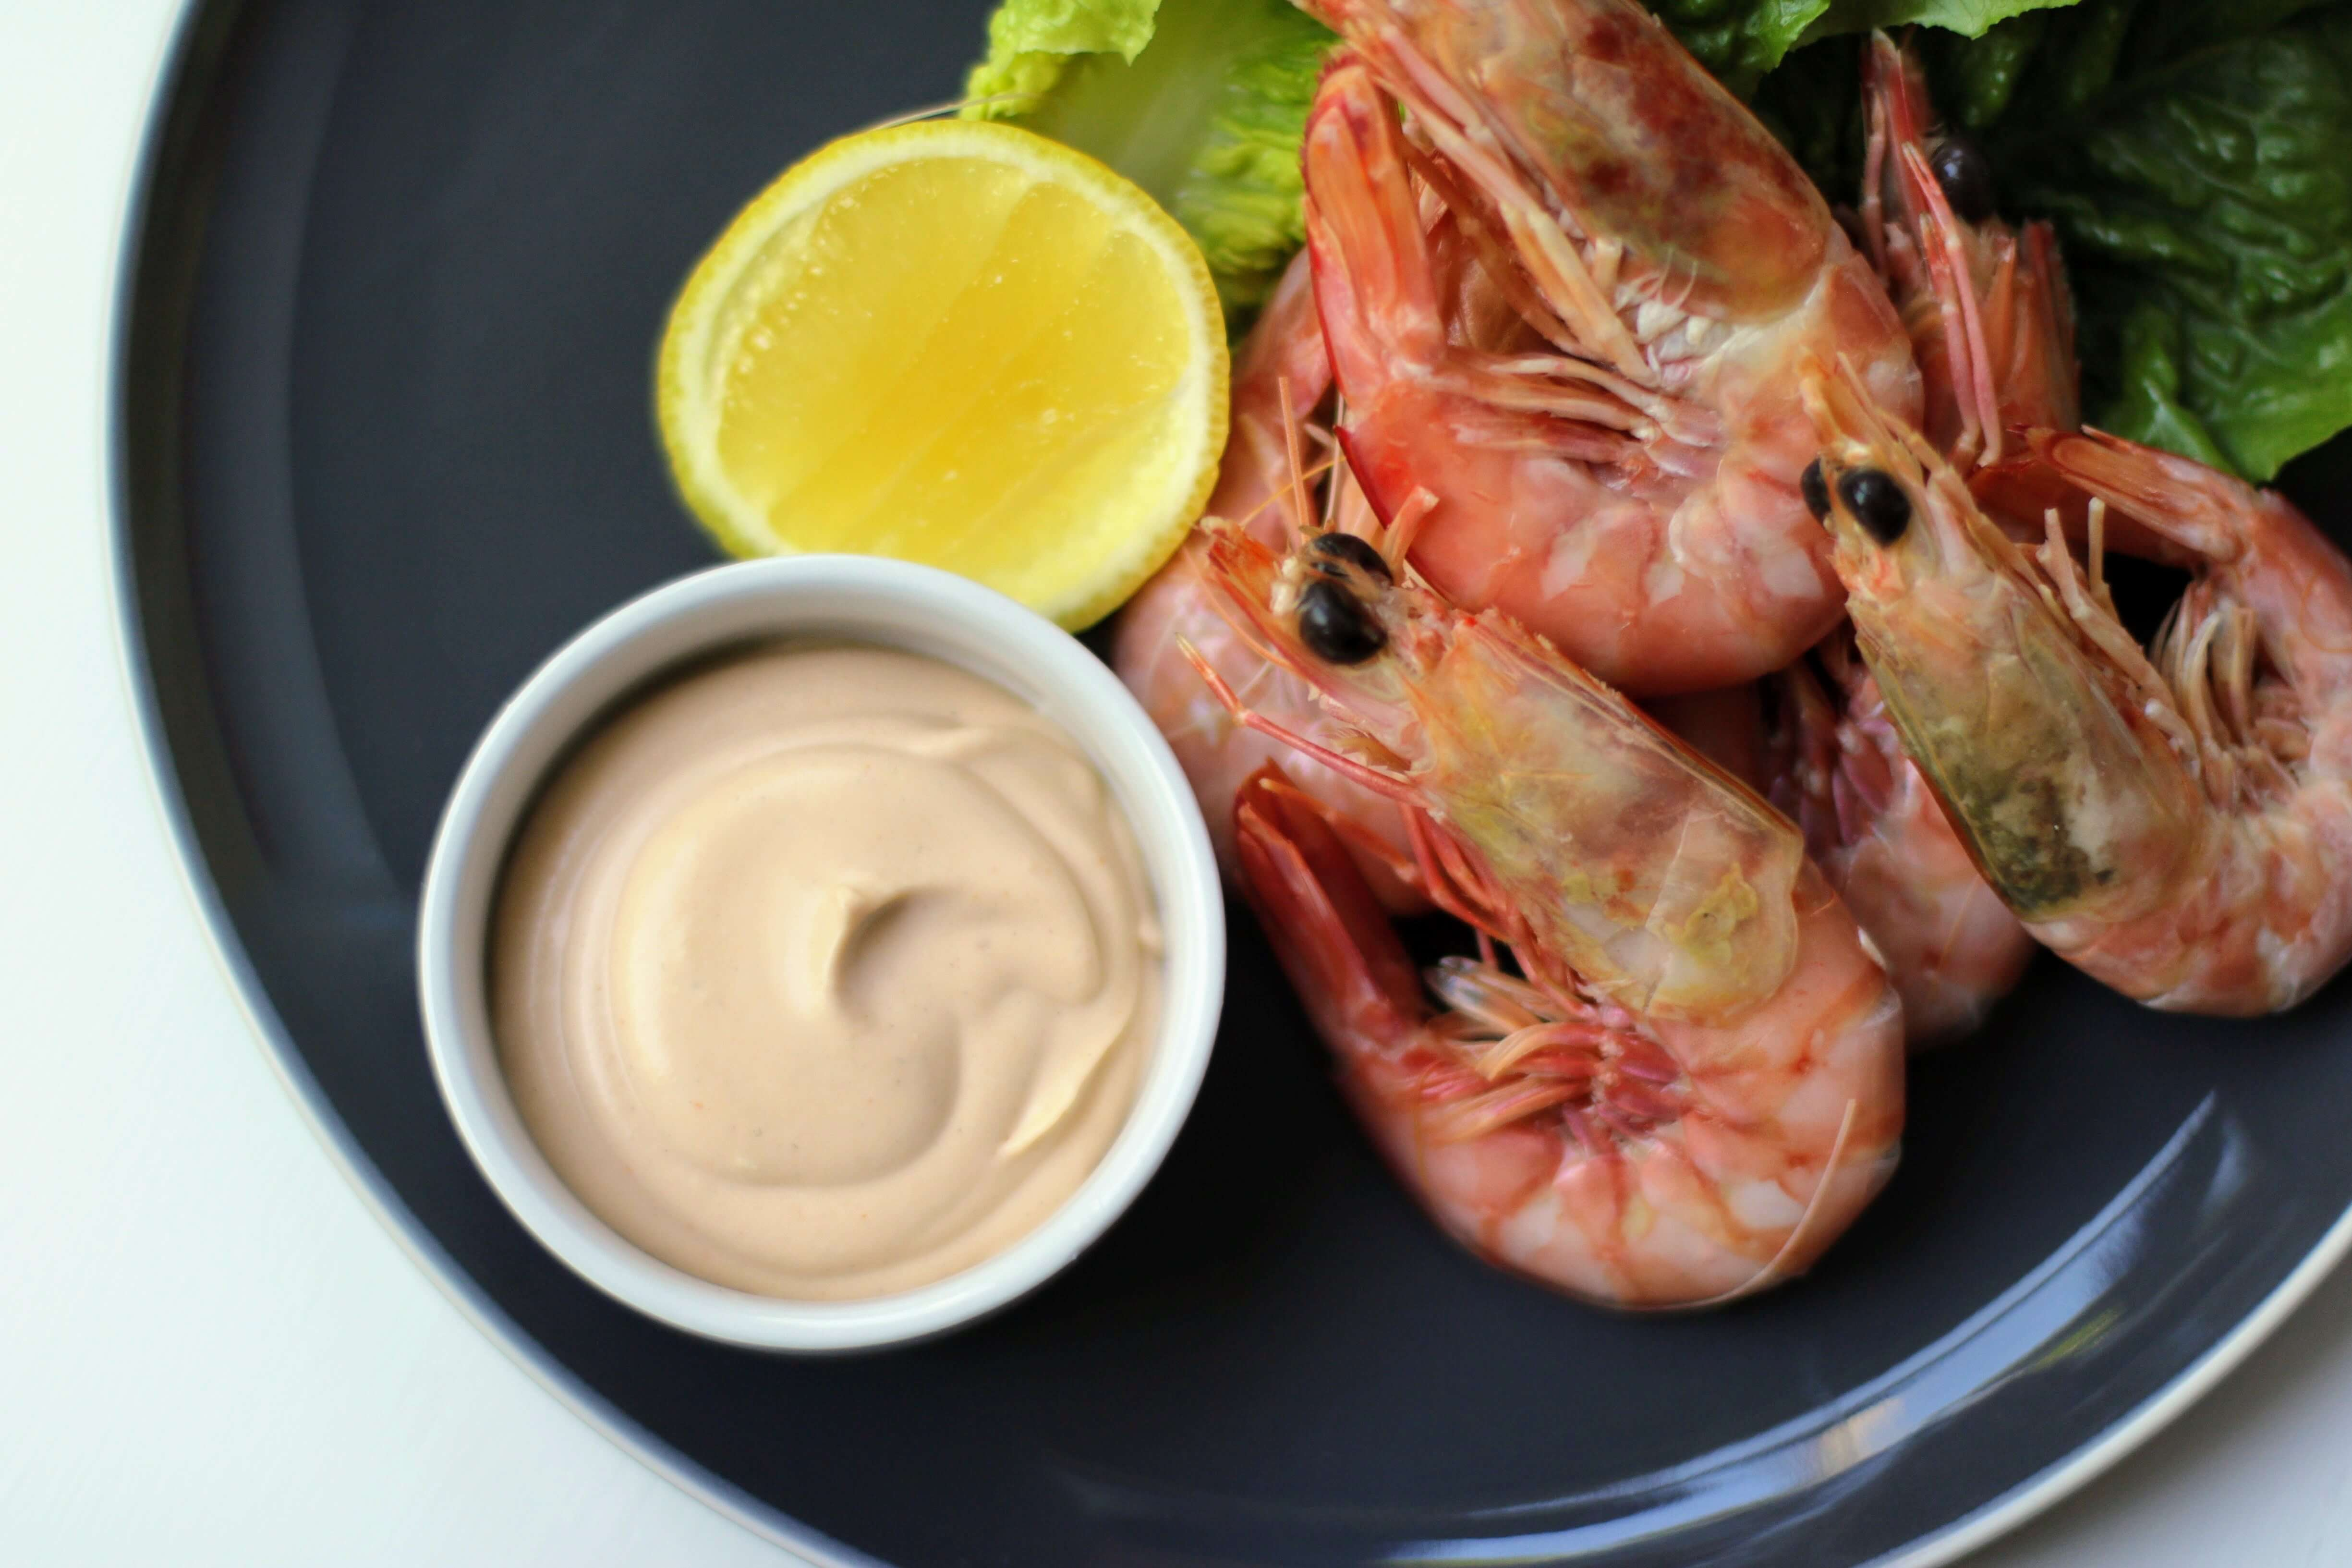 Prawns and sauce